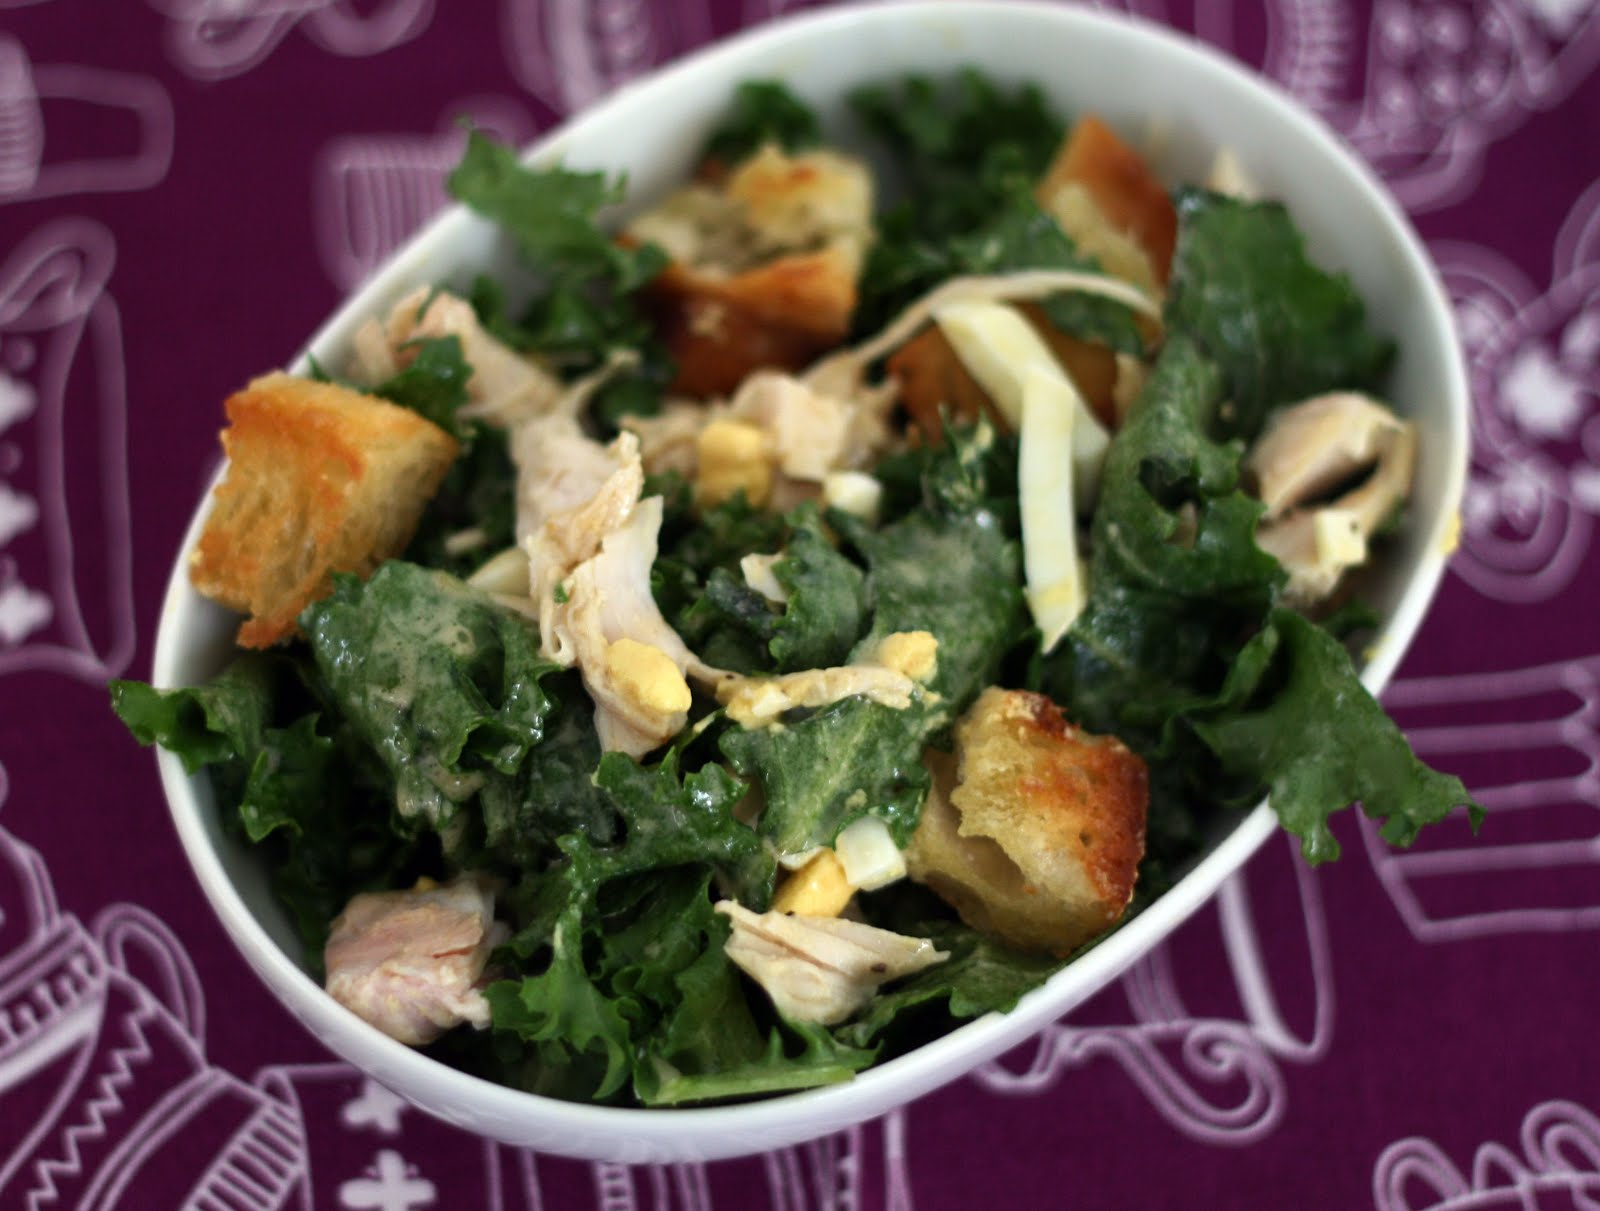 Escarole Salad With Turkey Garlic Rubbed Croutons Coconut Lime